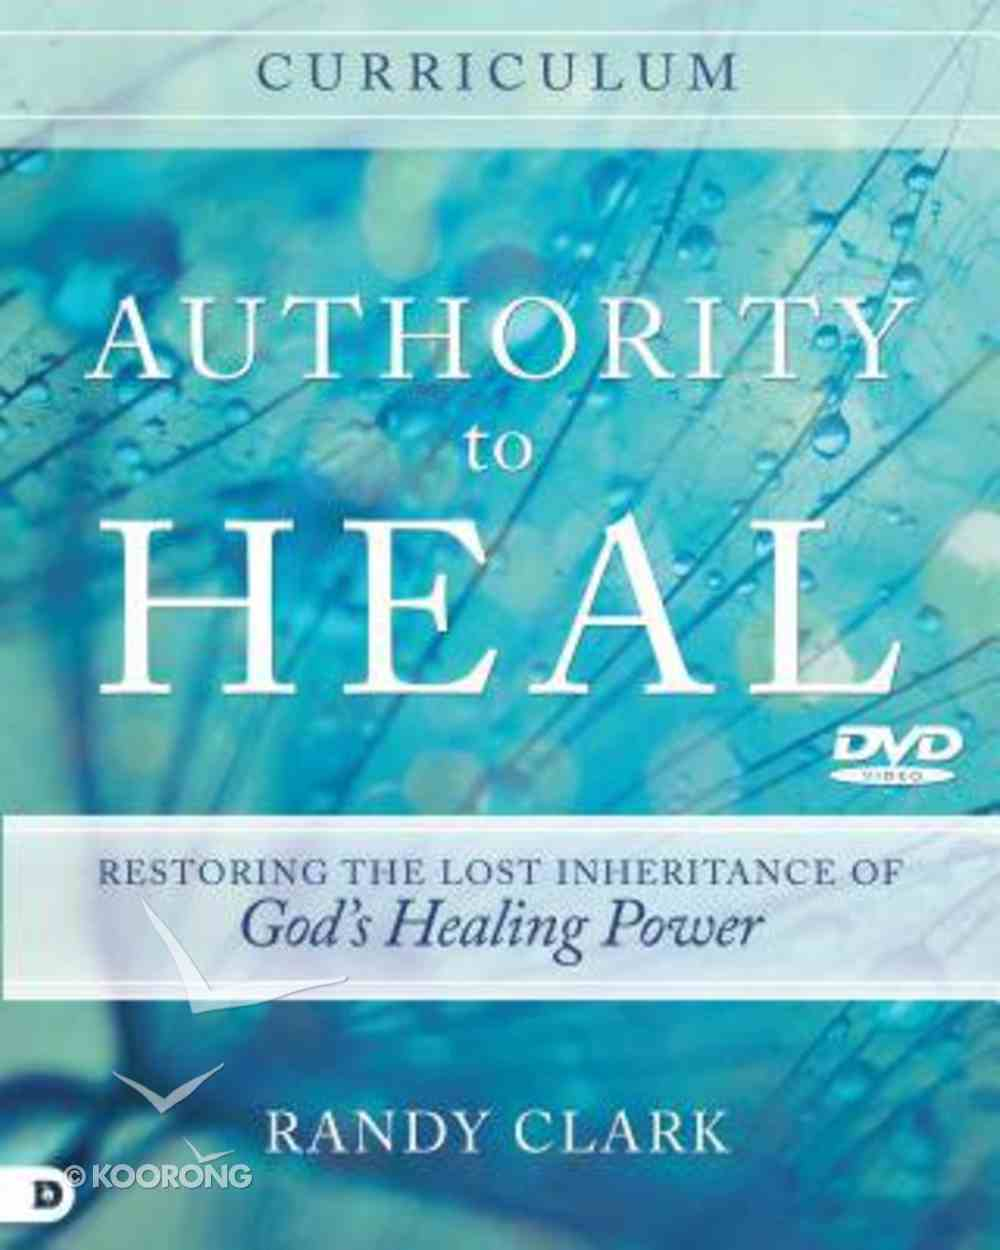 Authority to Heal - Restoring the Lost Inheritance of God's Healing Power (Curriculum) Pack